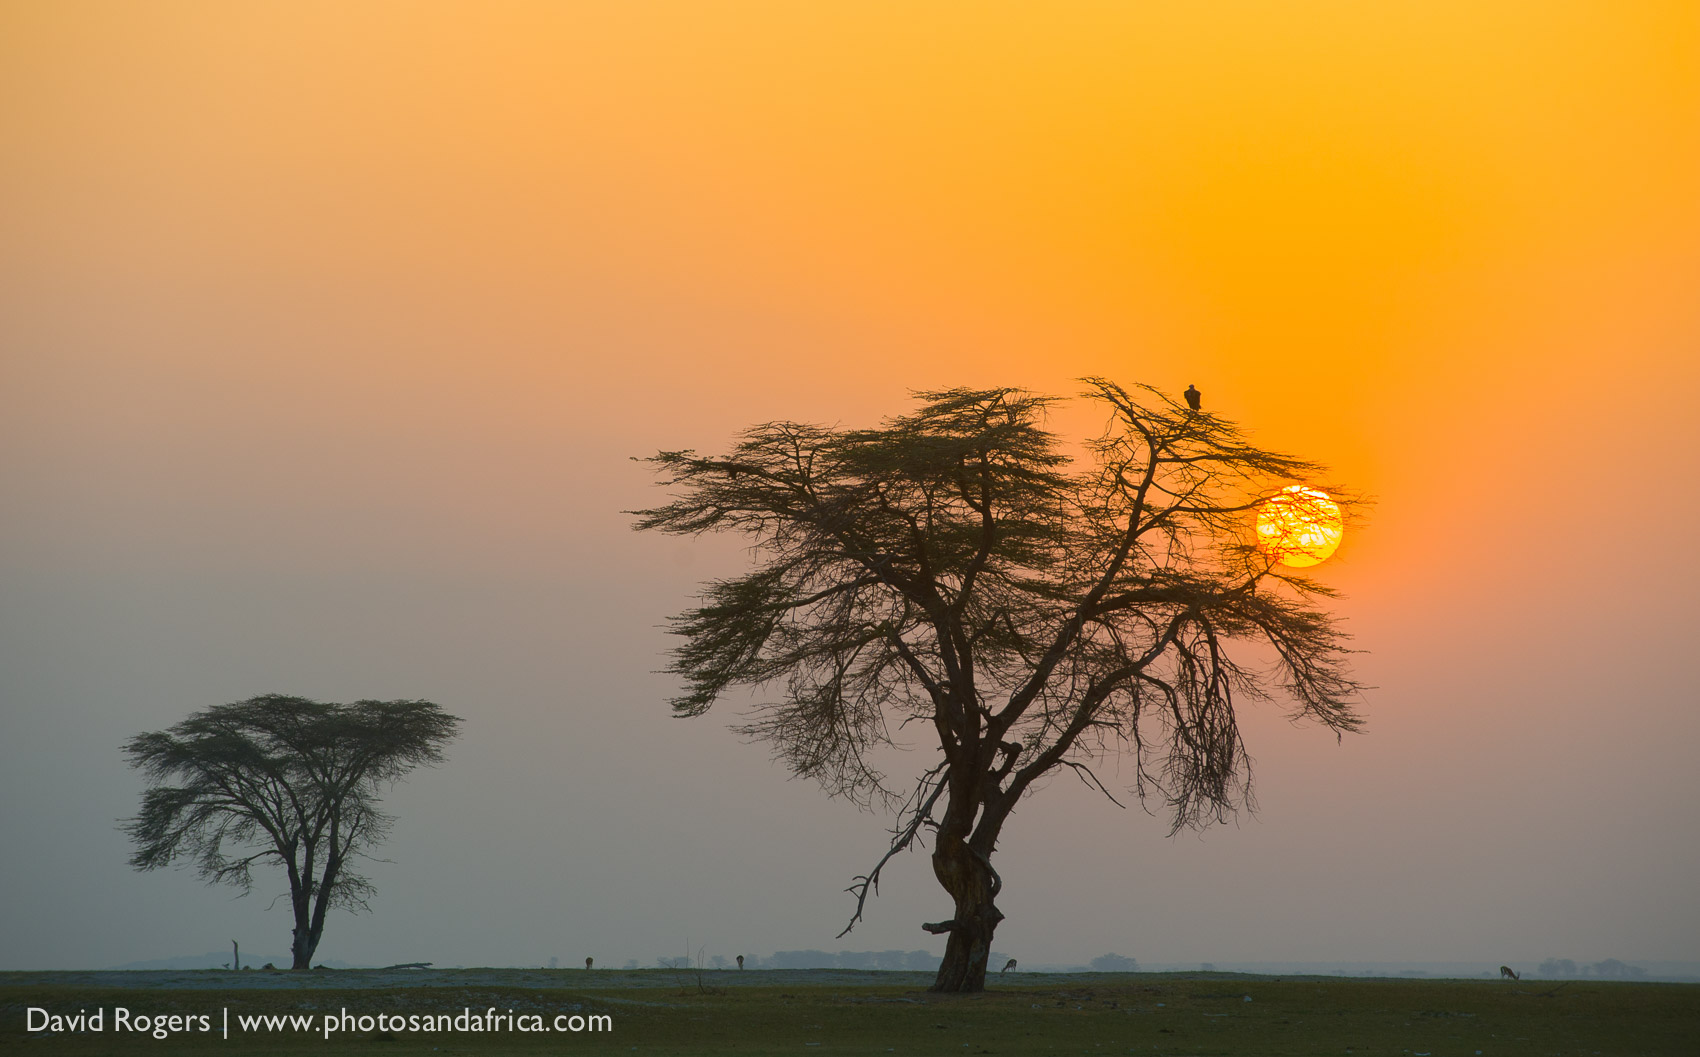 Kenya, Amboseli National Park, landscape with sunseting in the background with the silhoette of two Acacia Trees. ©David Rogers